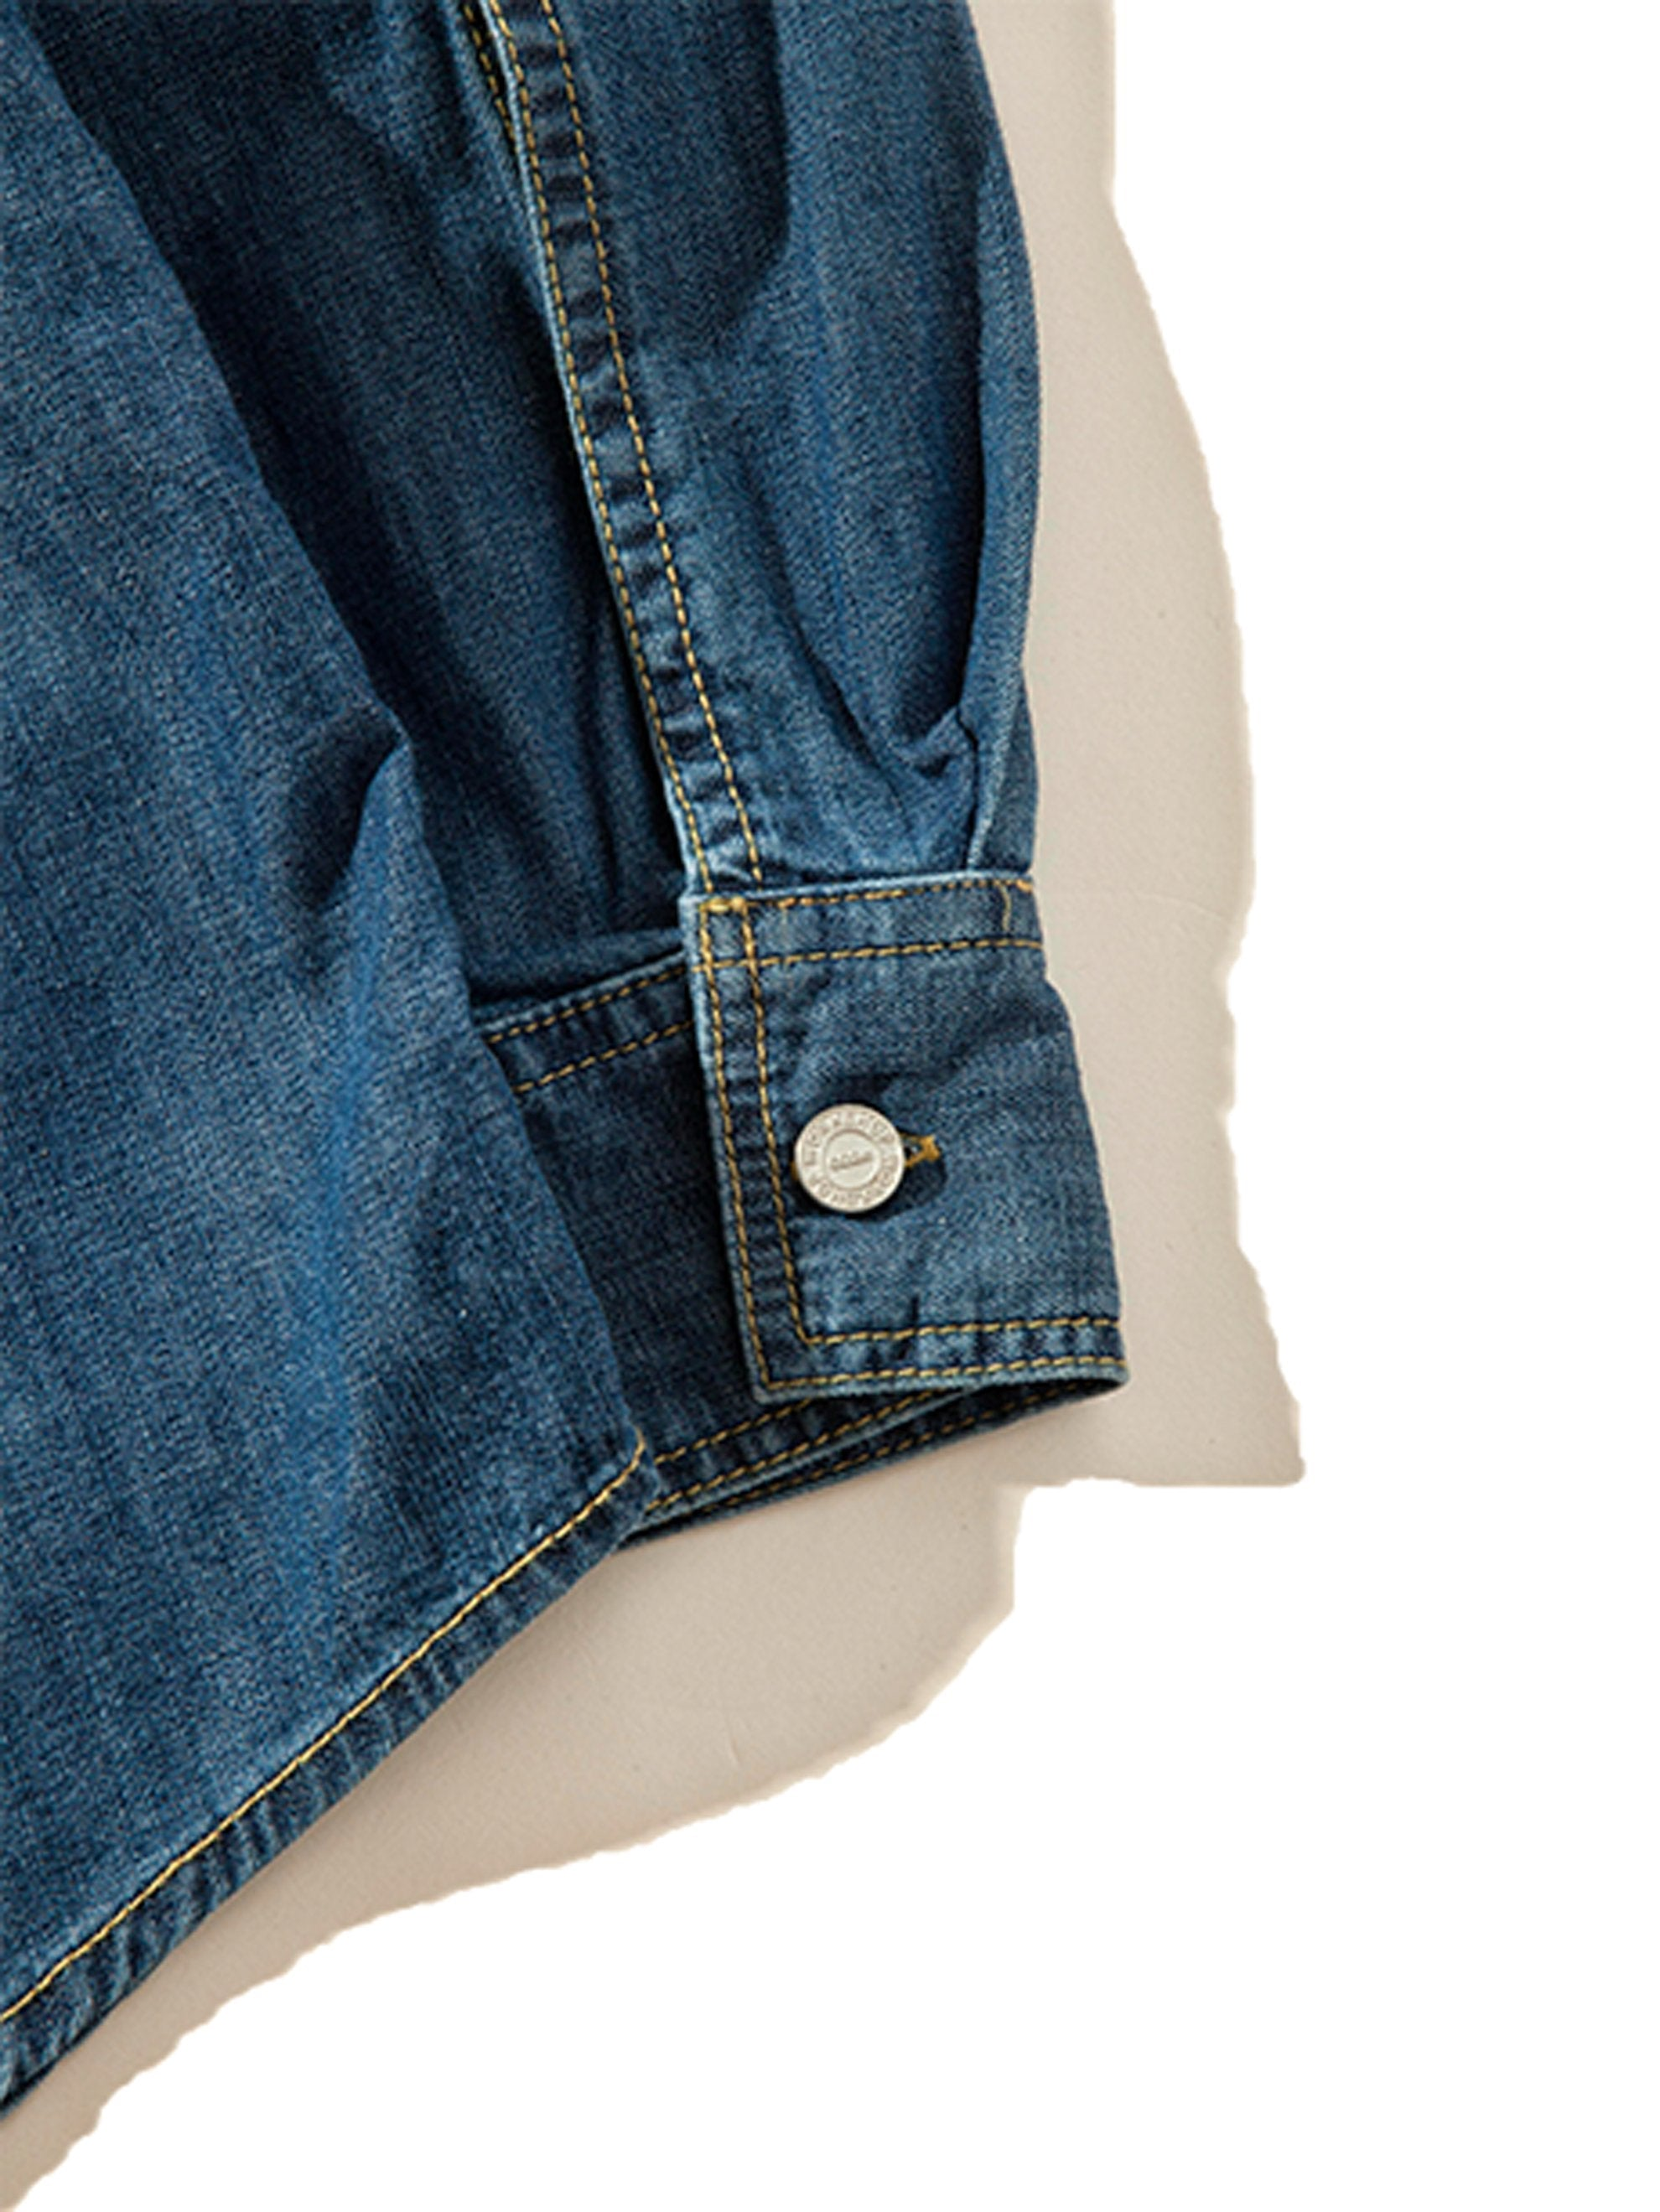 XL Smoker's Collection Jean Shirt 8